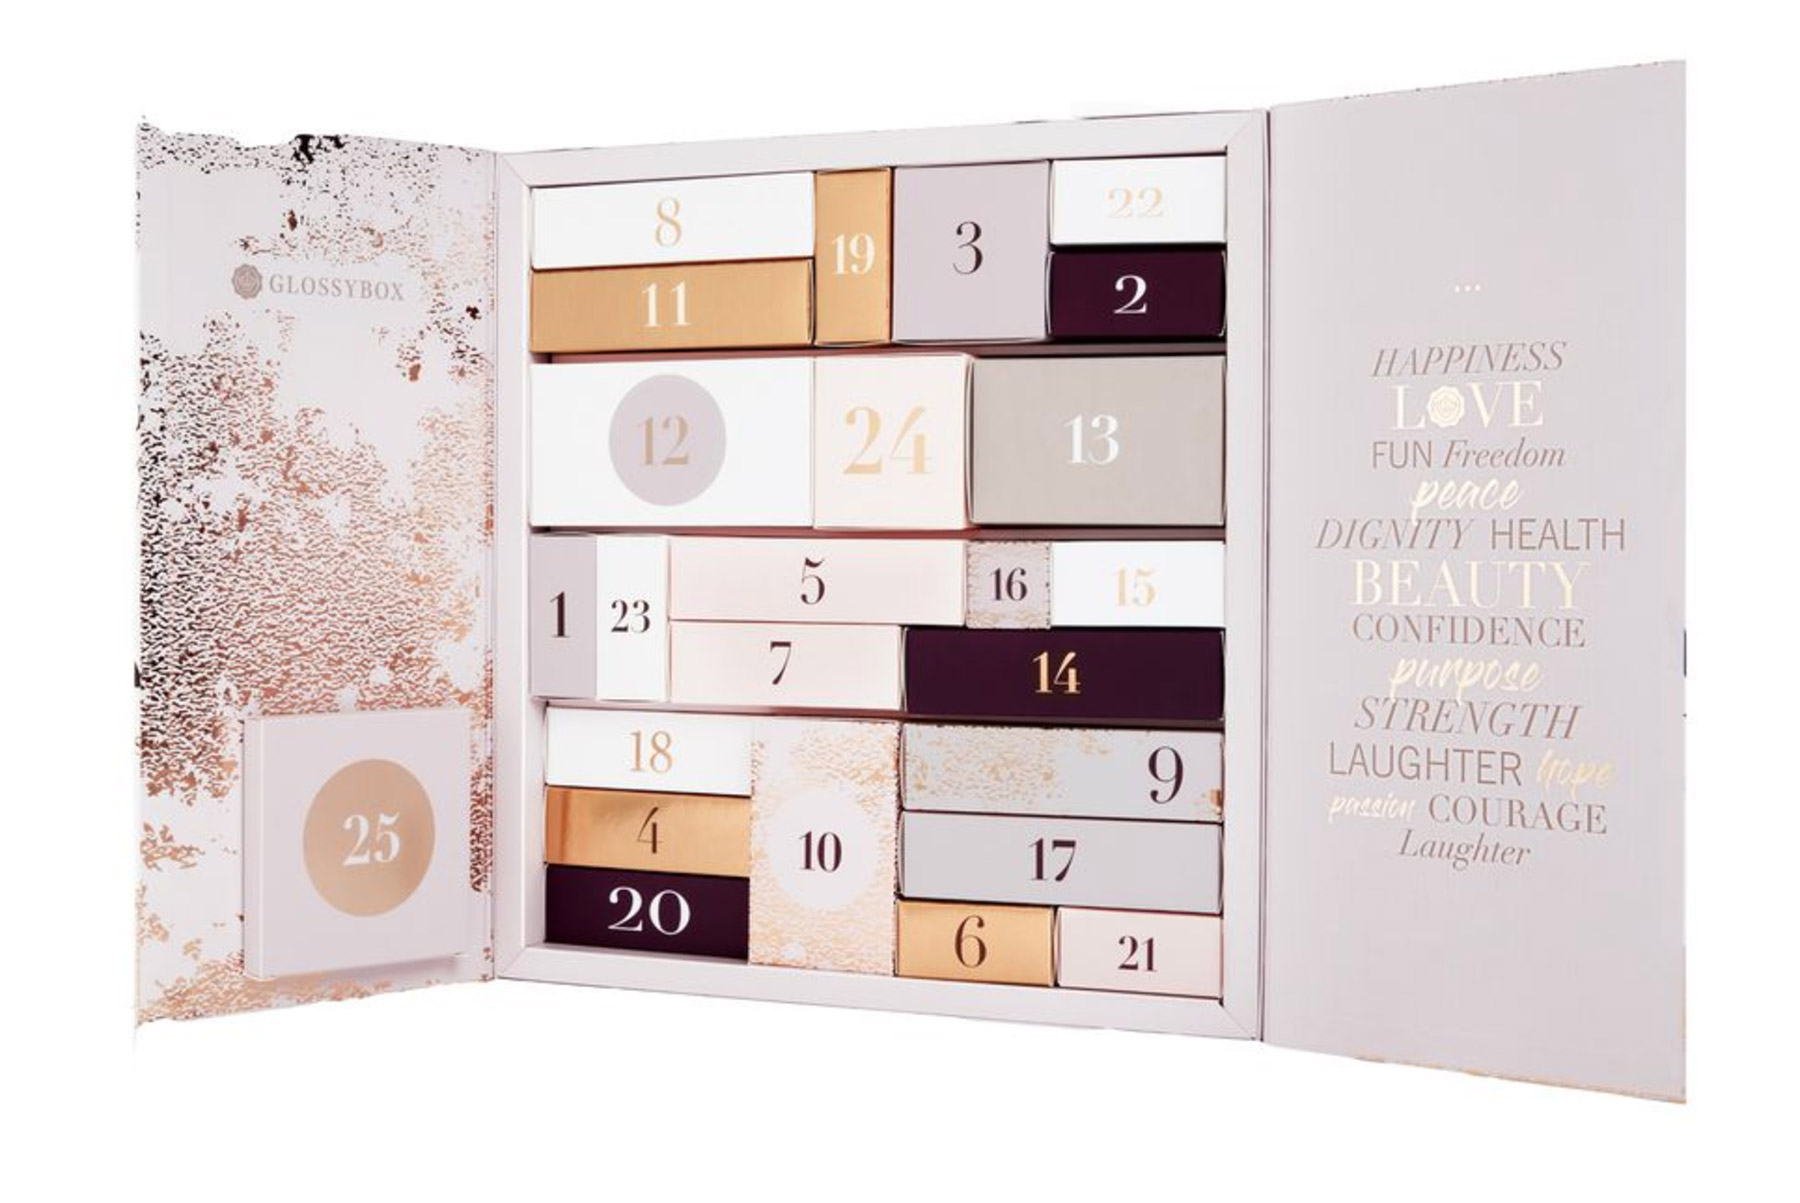 glossybox-calendrier-avent-beaute-2018